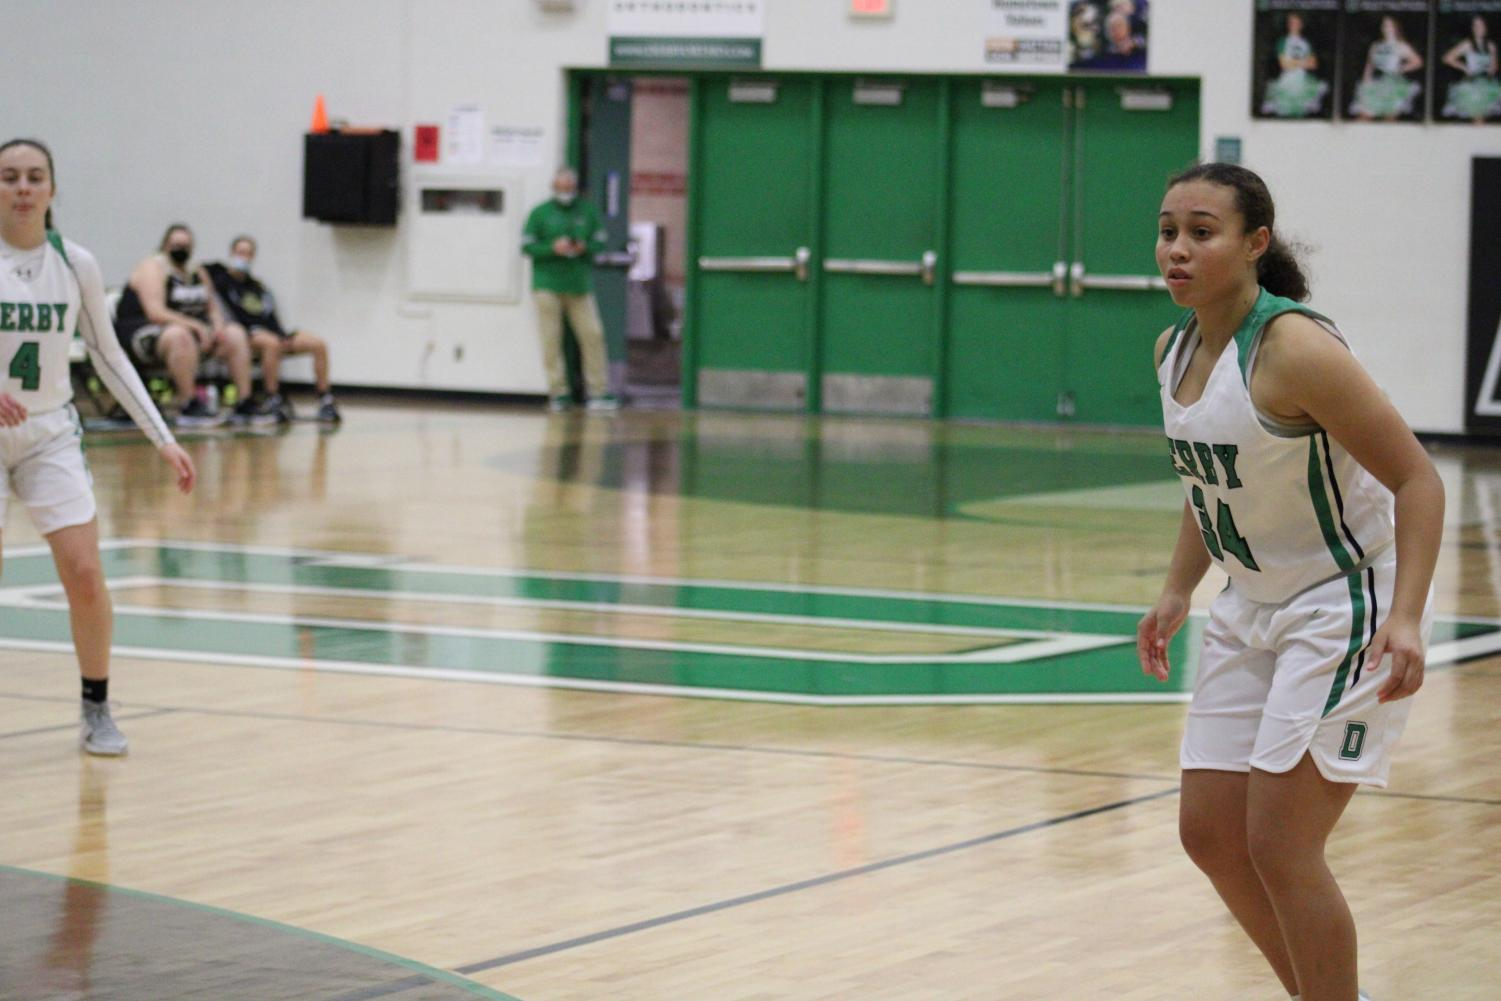 JV+Girls+Basketball+and+Cheer+%28Photos+by+Joselyn+Steele%29